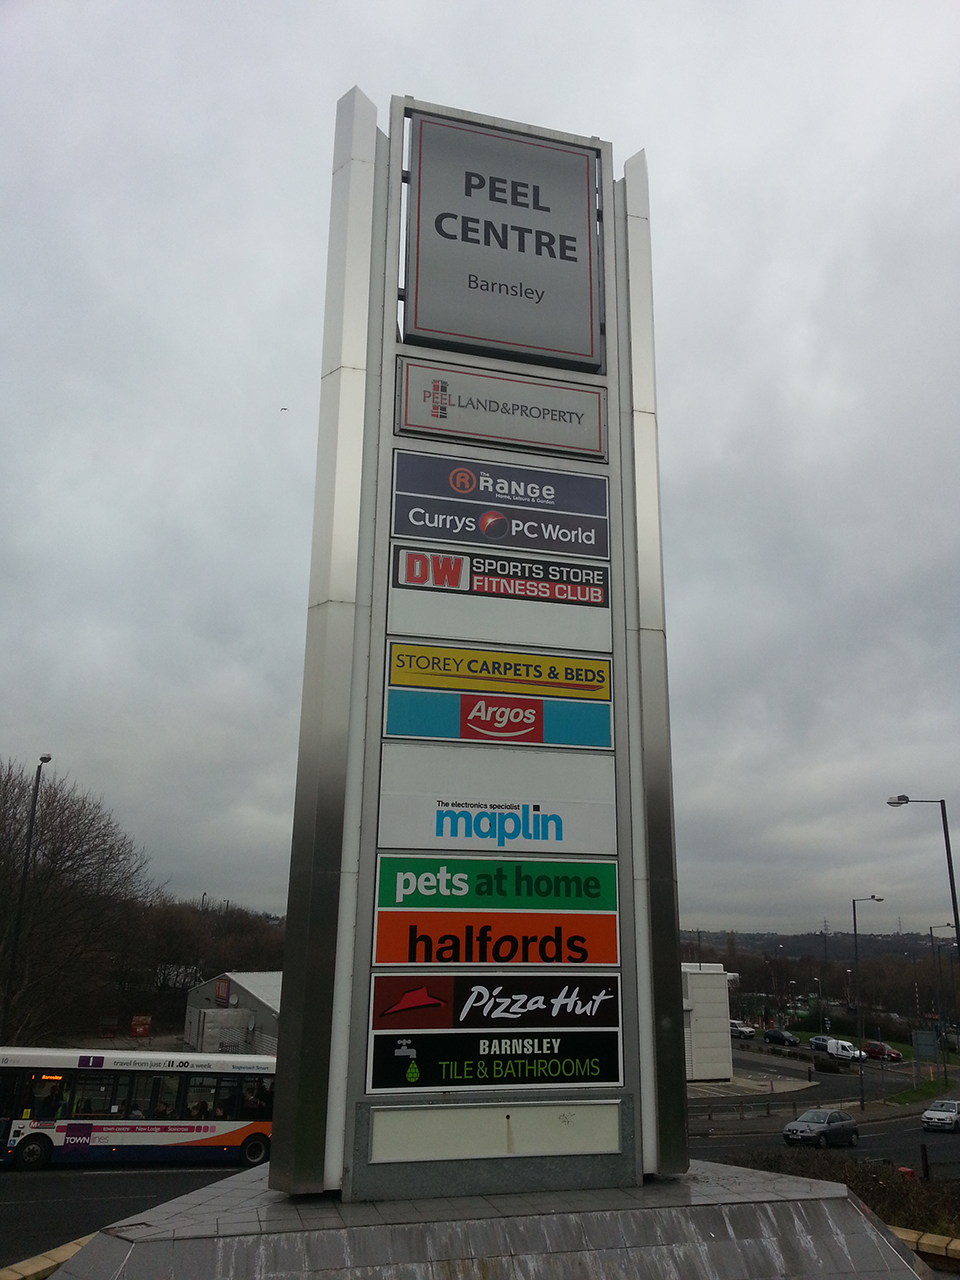 Peel Centre Barnsley Retail Park Totem Signage